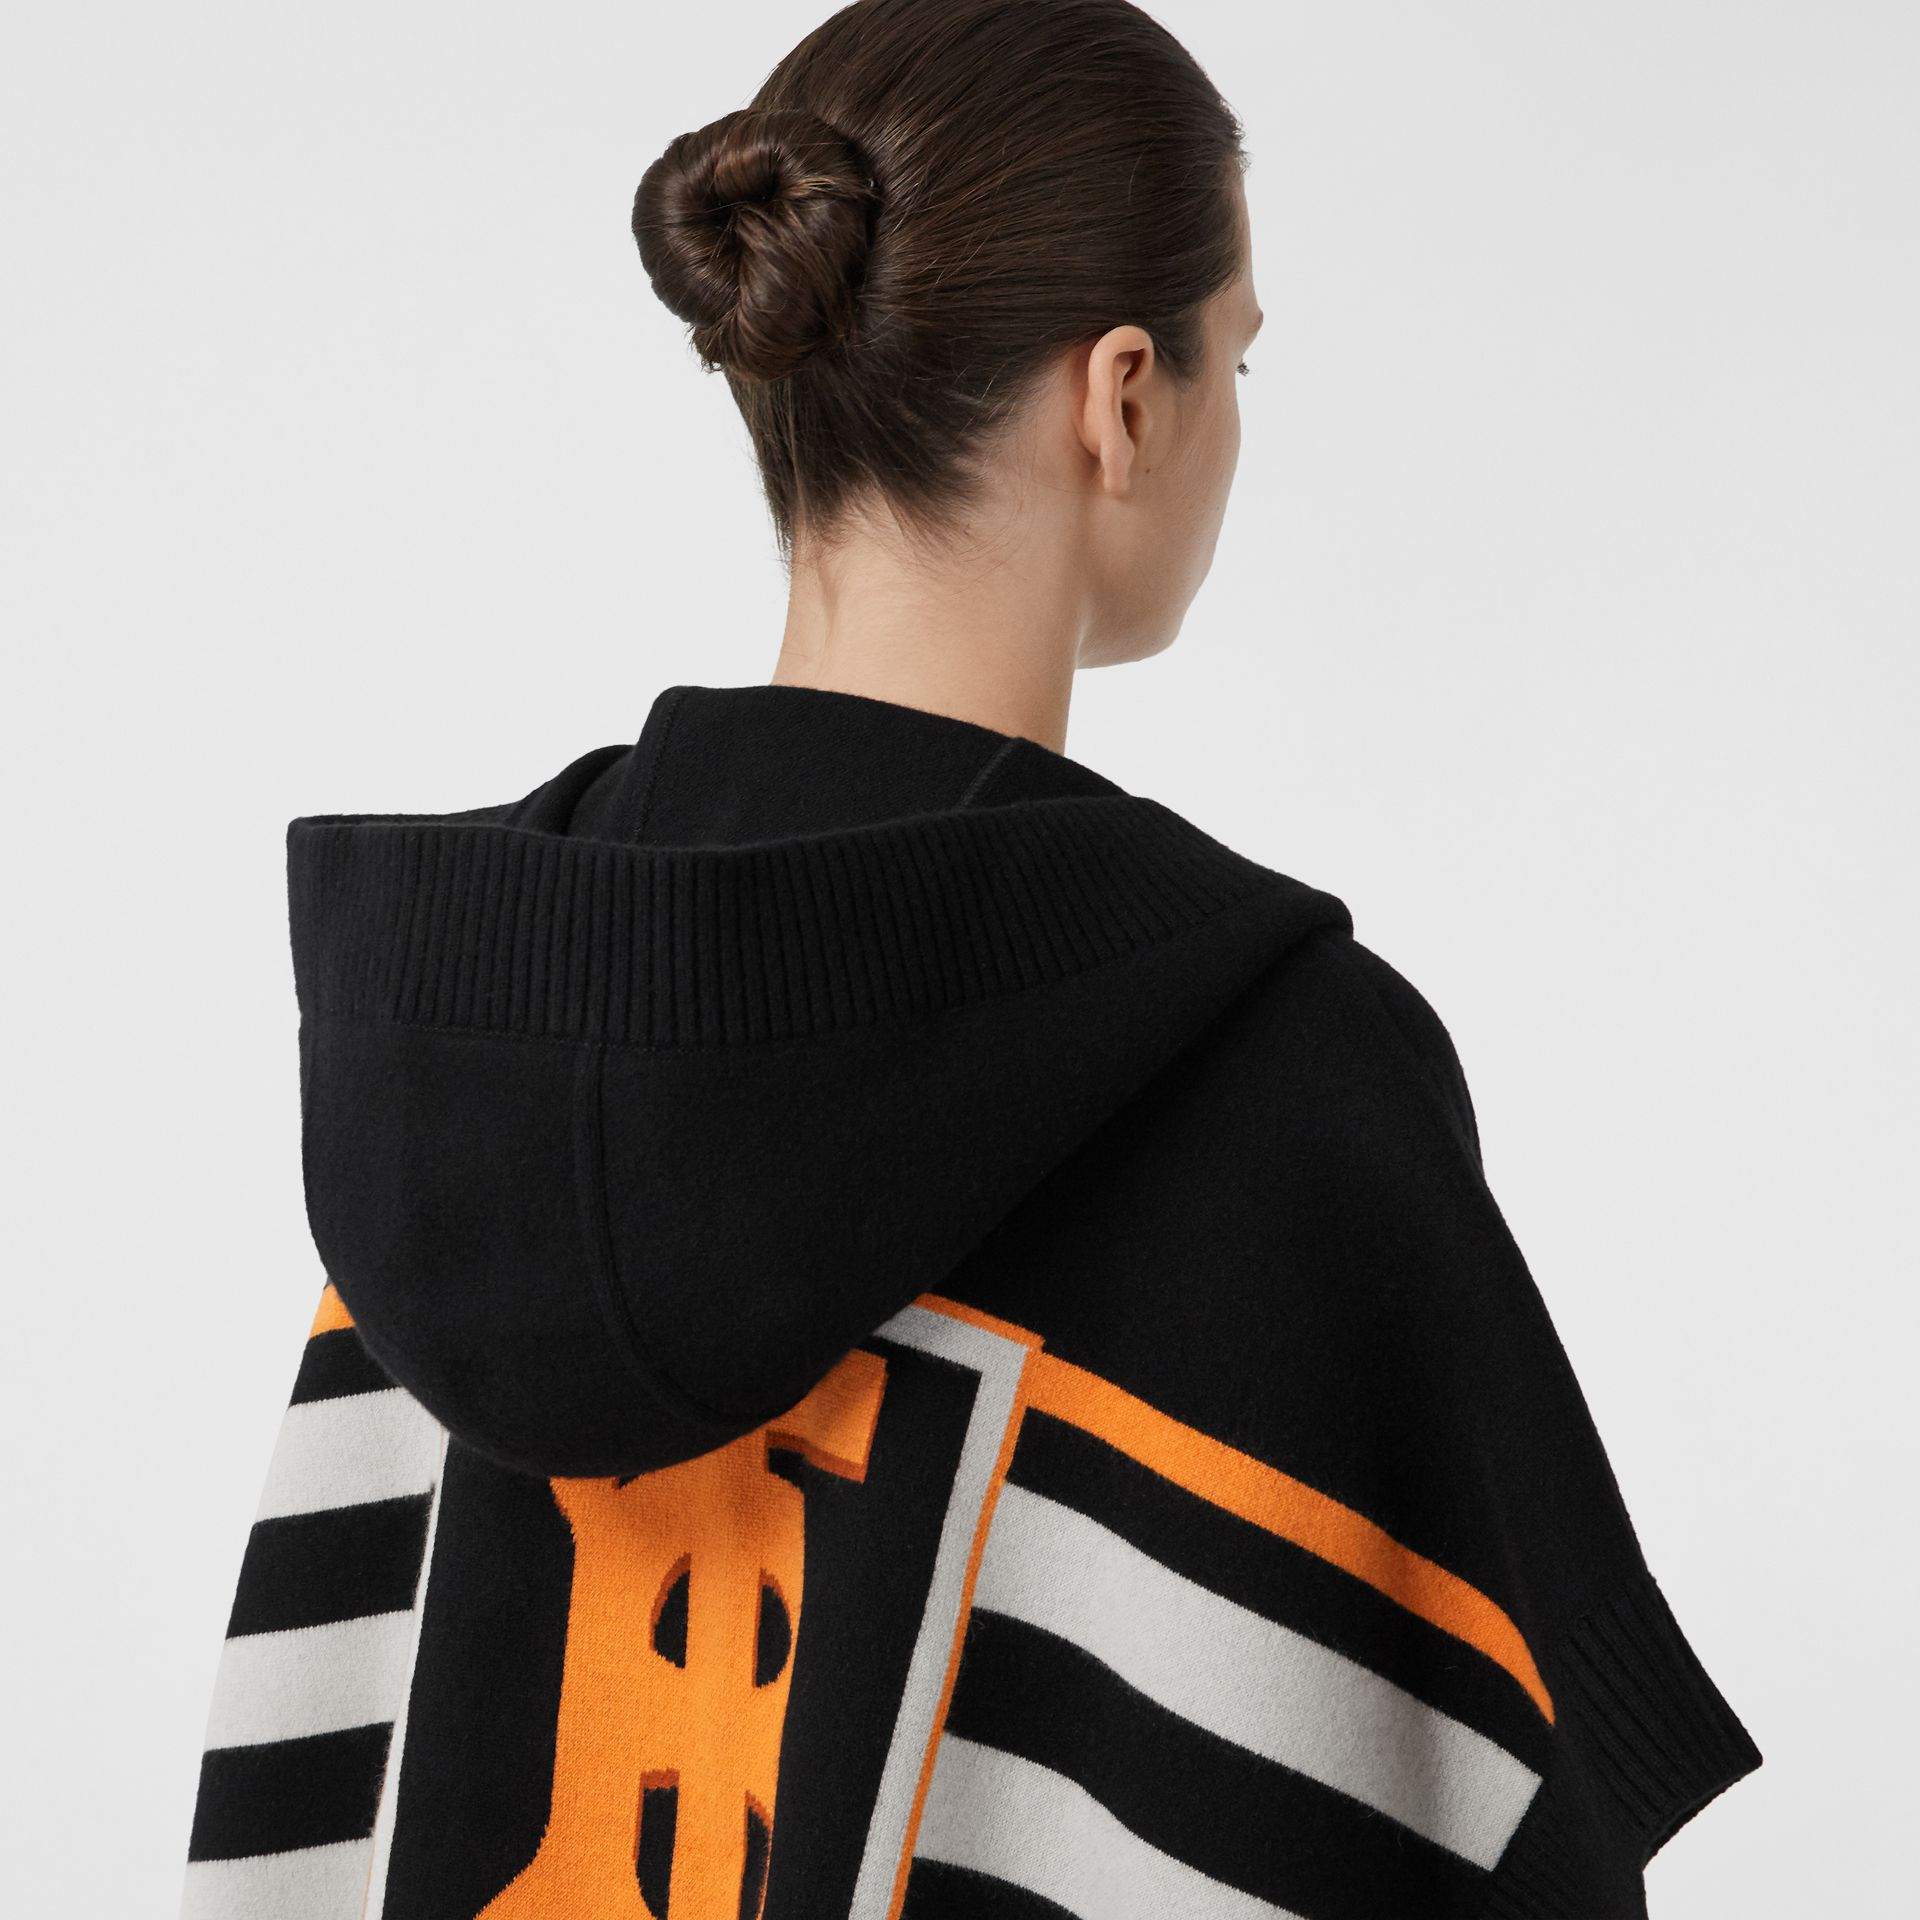 Monogram Motif Intarsia Wool Cashmere Blend Cape in Black - Women | Burberry Hong Kong S.A.R - gallery image 1